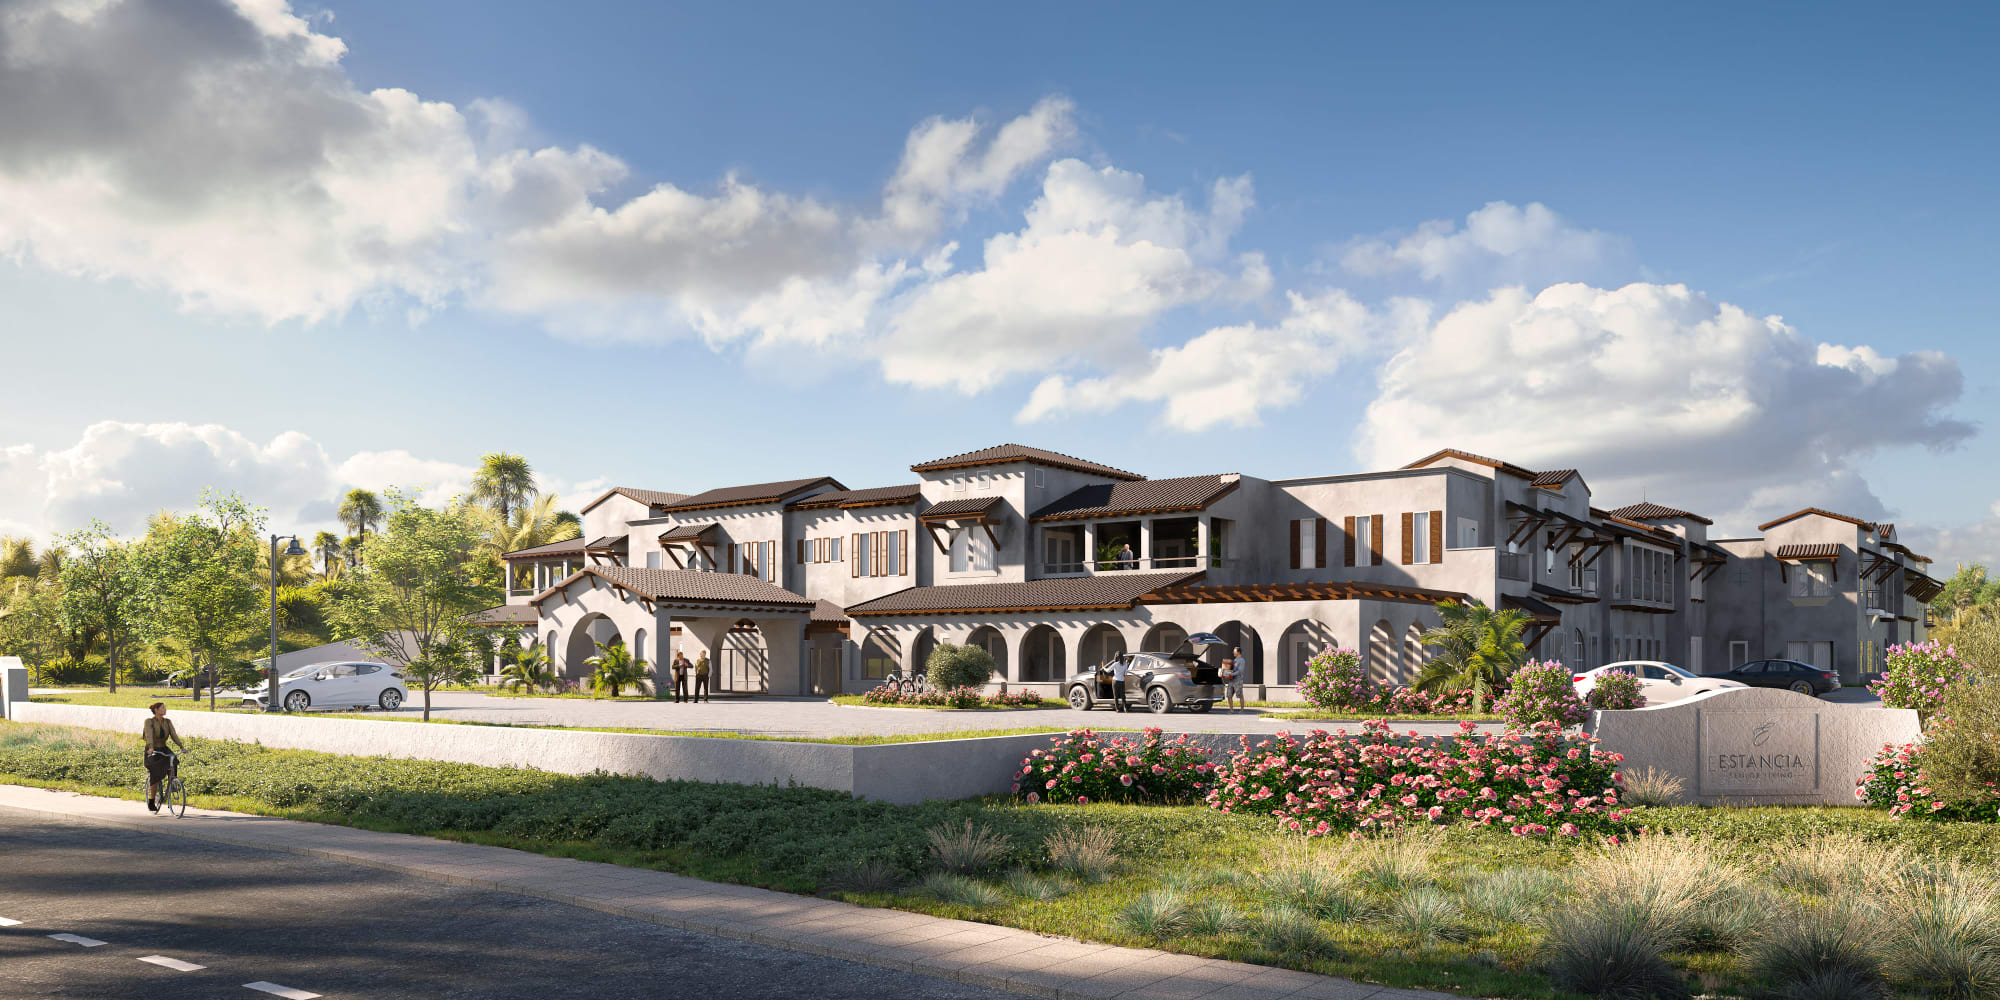 Exterior Rendering of Estancia Senior Living - Front Facade